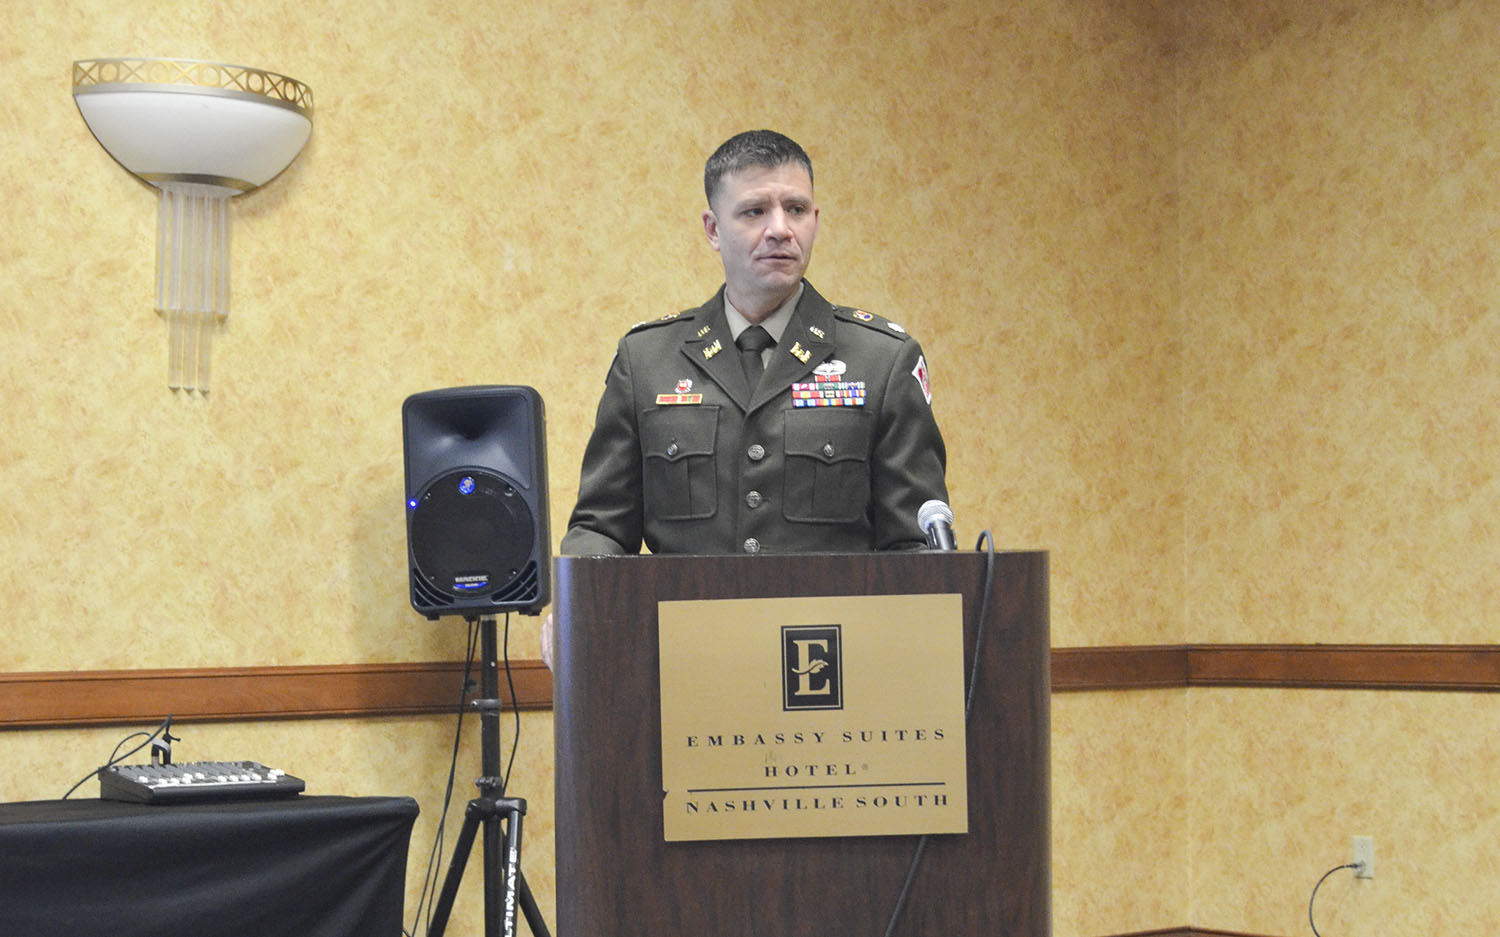 Conference Highlights Priorities Along Tennessee, Cumberland